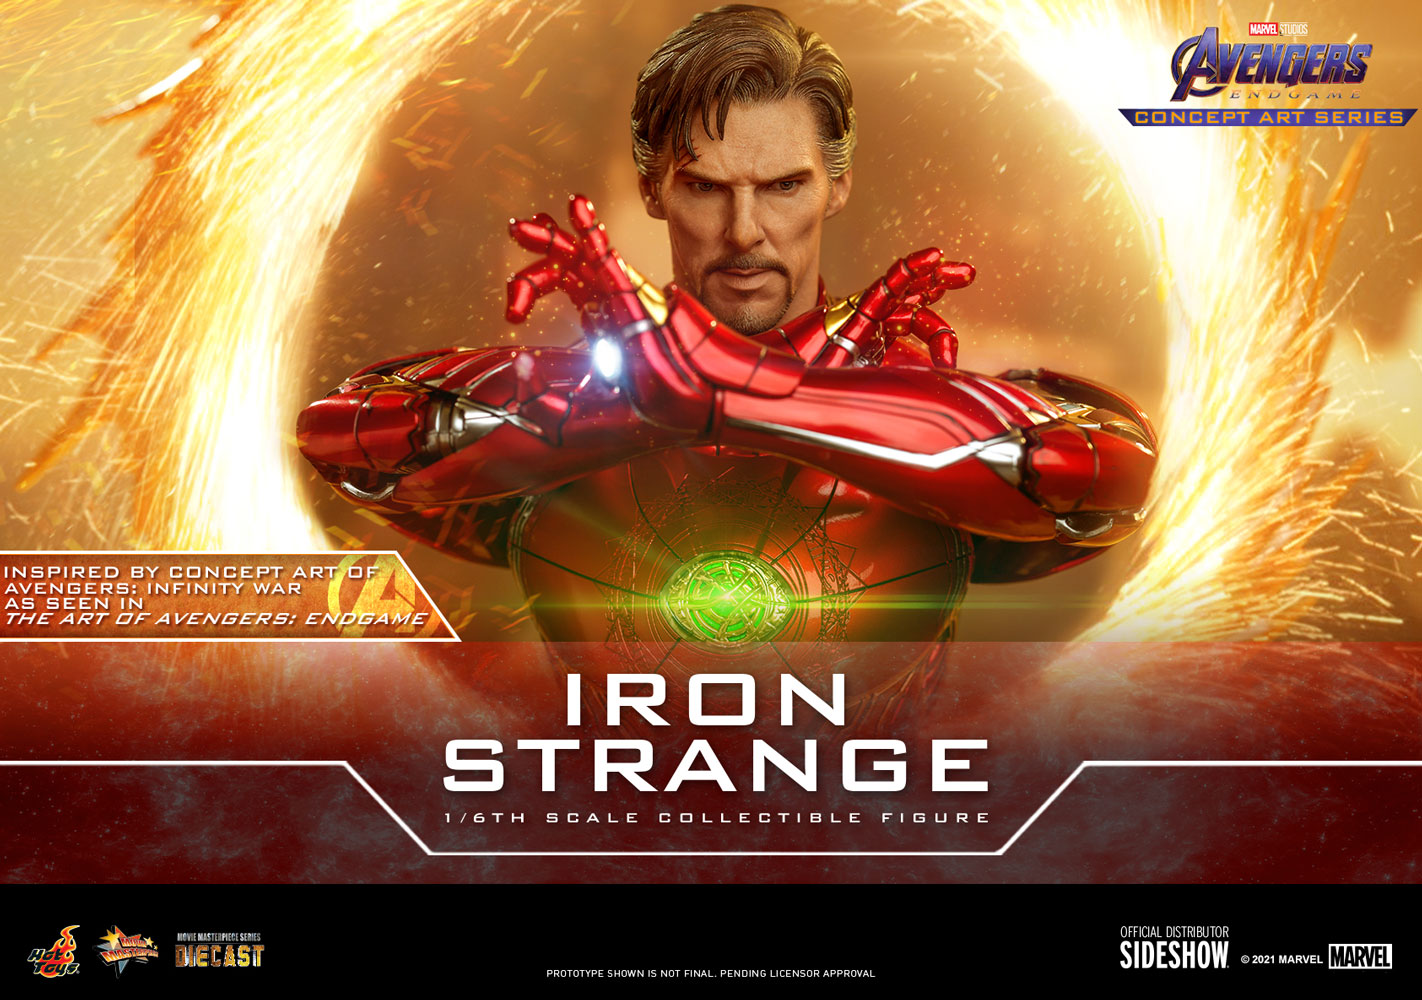 The Iron Strange 1:6 figure, emerging from a mystical portal.